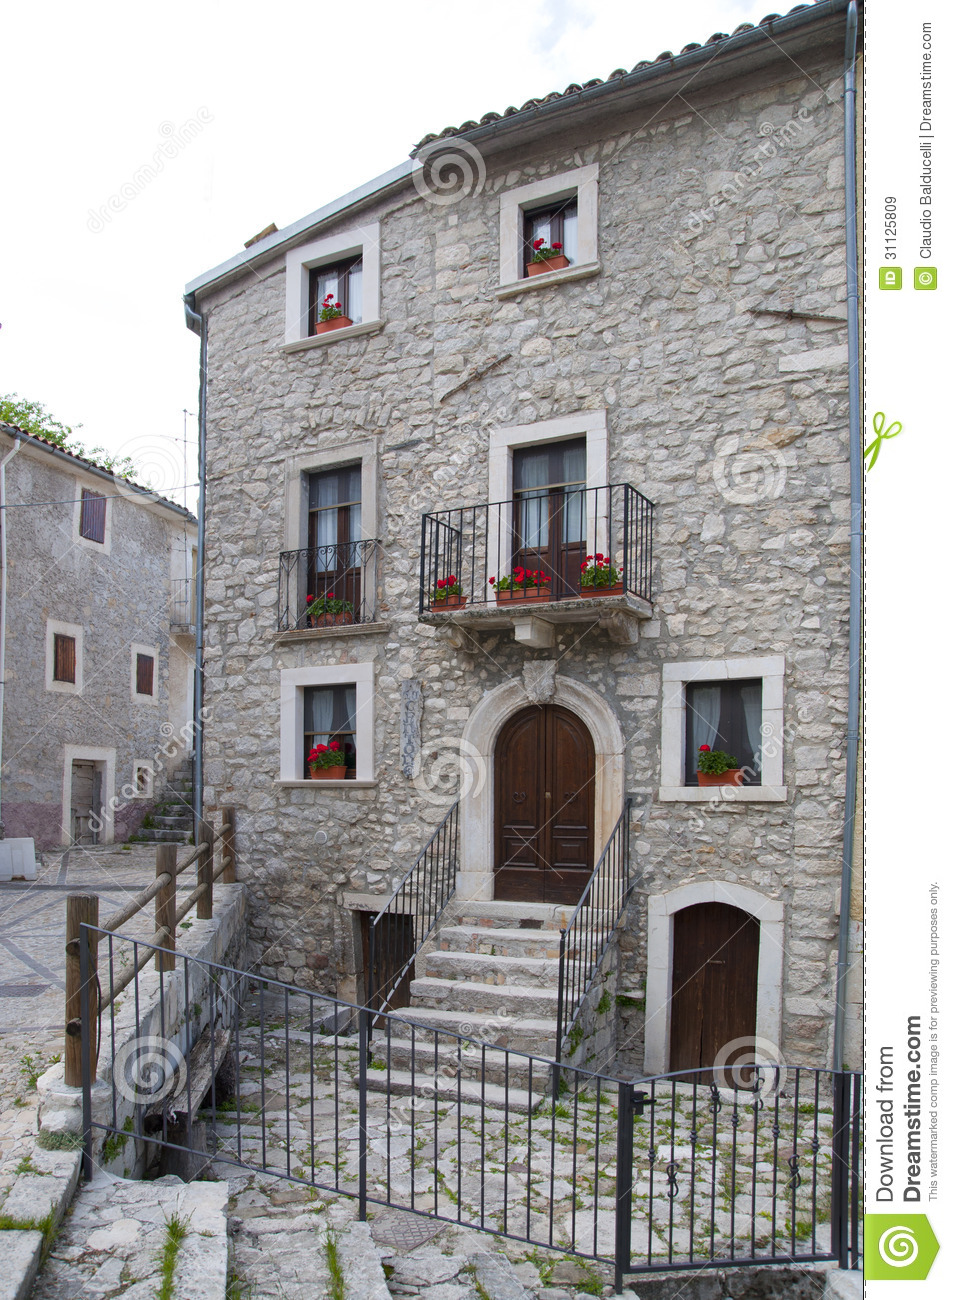 Facade stone house royalty free stock images image 31125809 Houses with stone facade